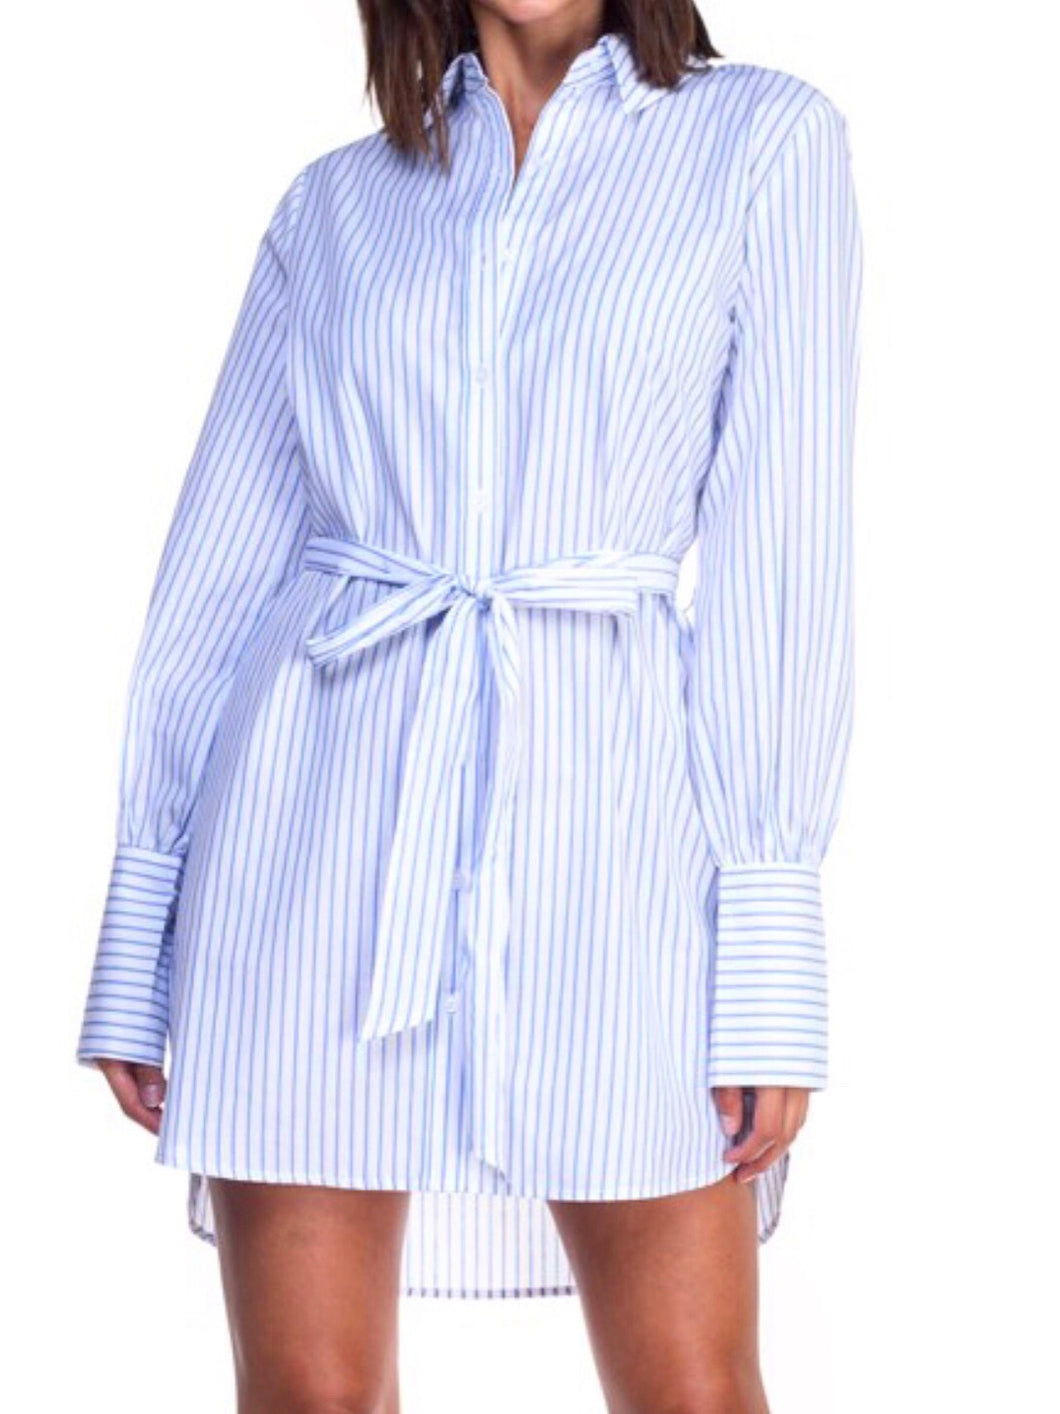 Business as Usual Blouse Dress